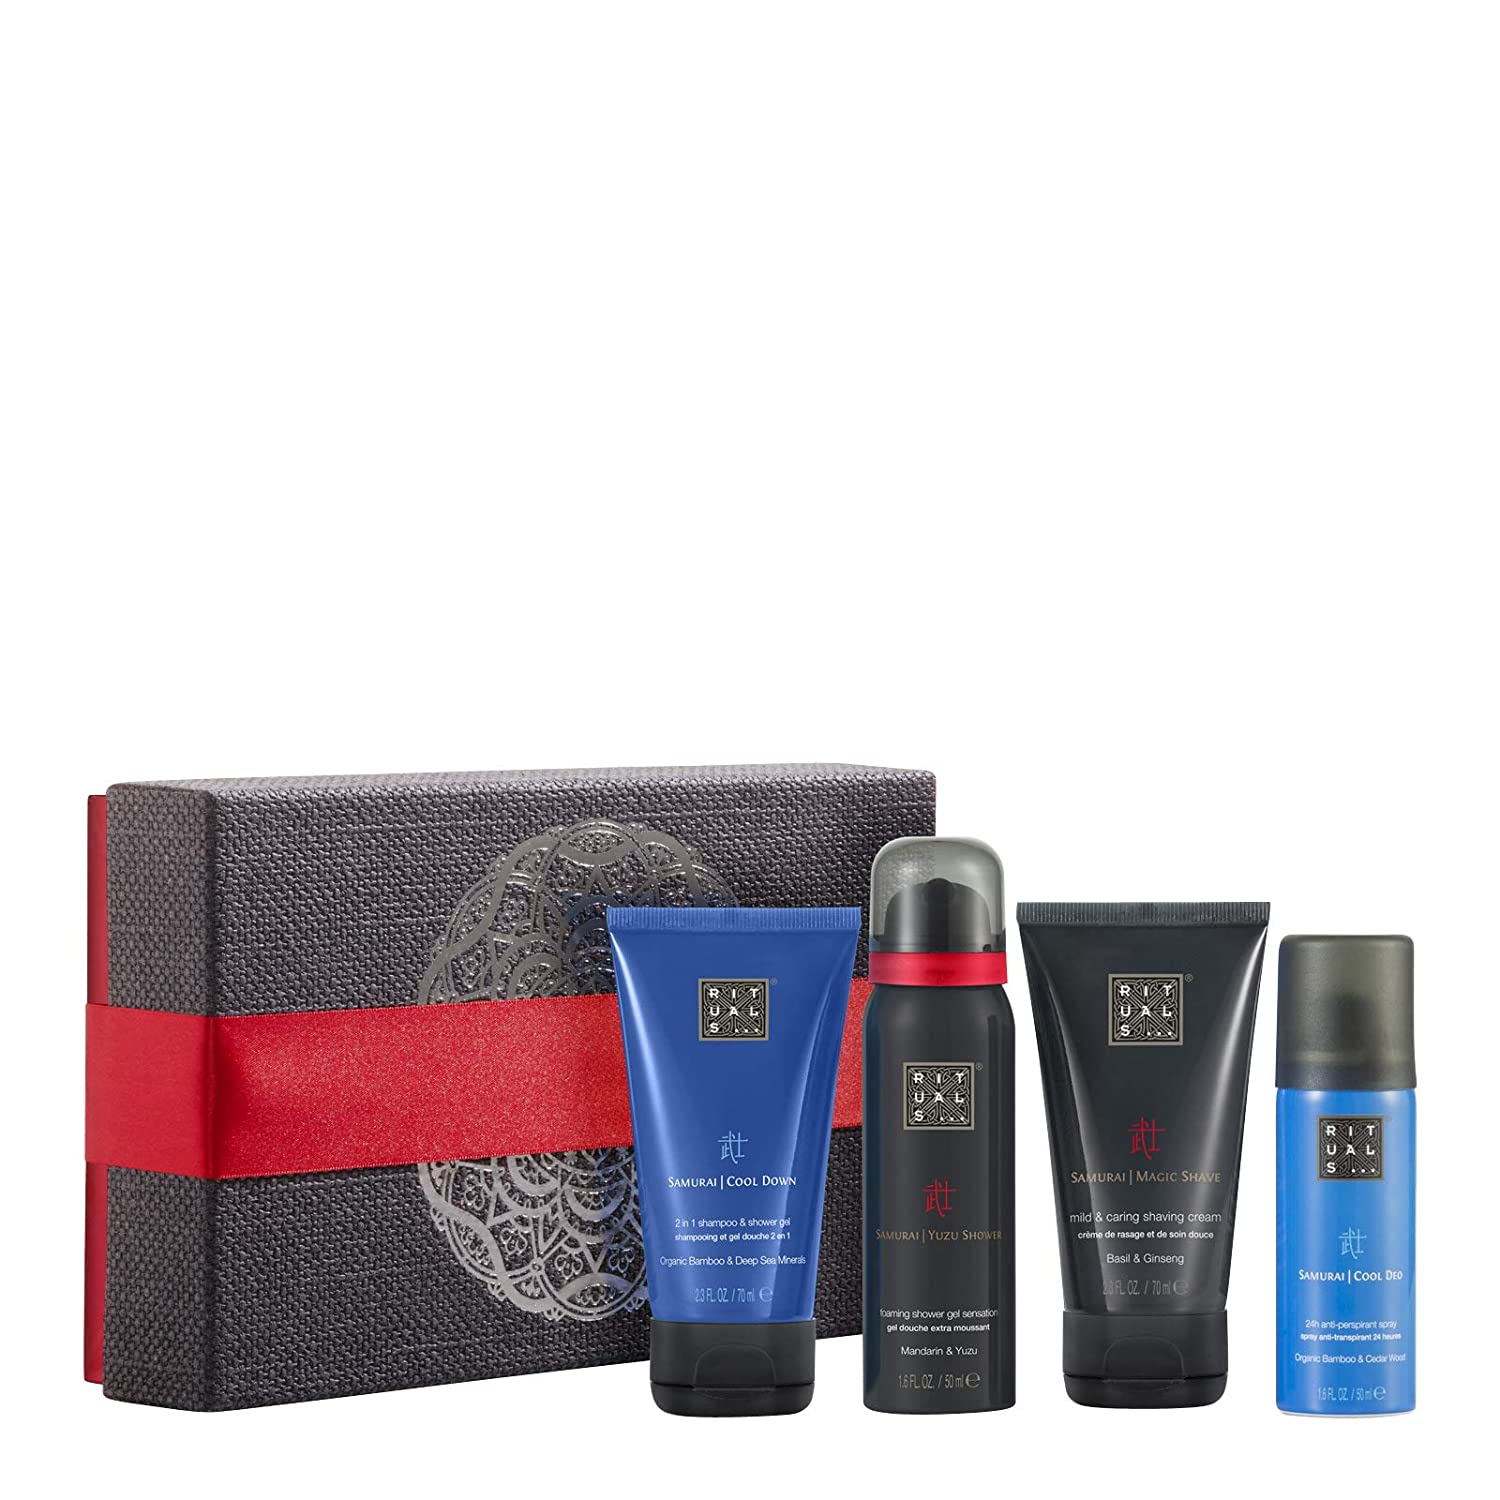 Rituals Samurai - Estuche refrescante Treat.: Amazon.es: Belleza